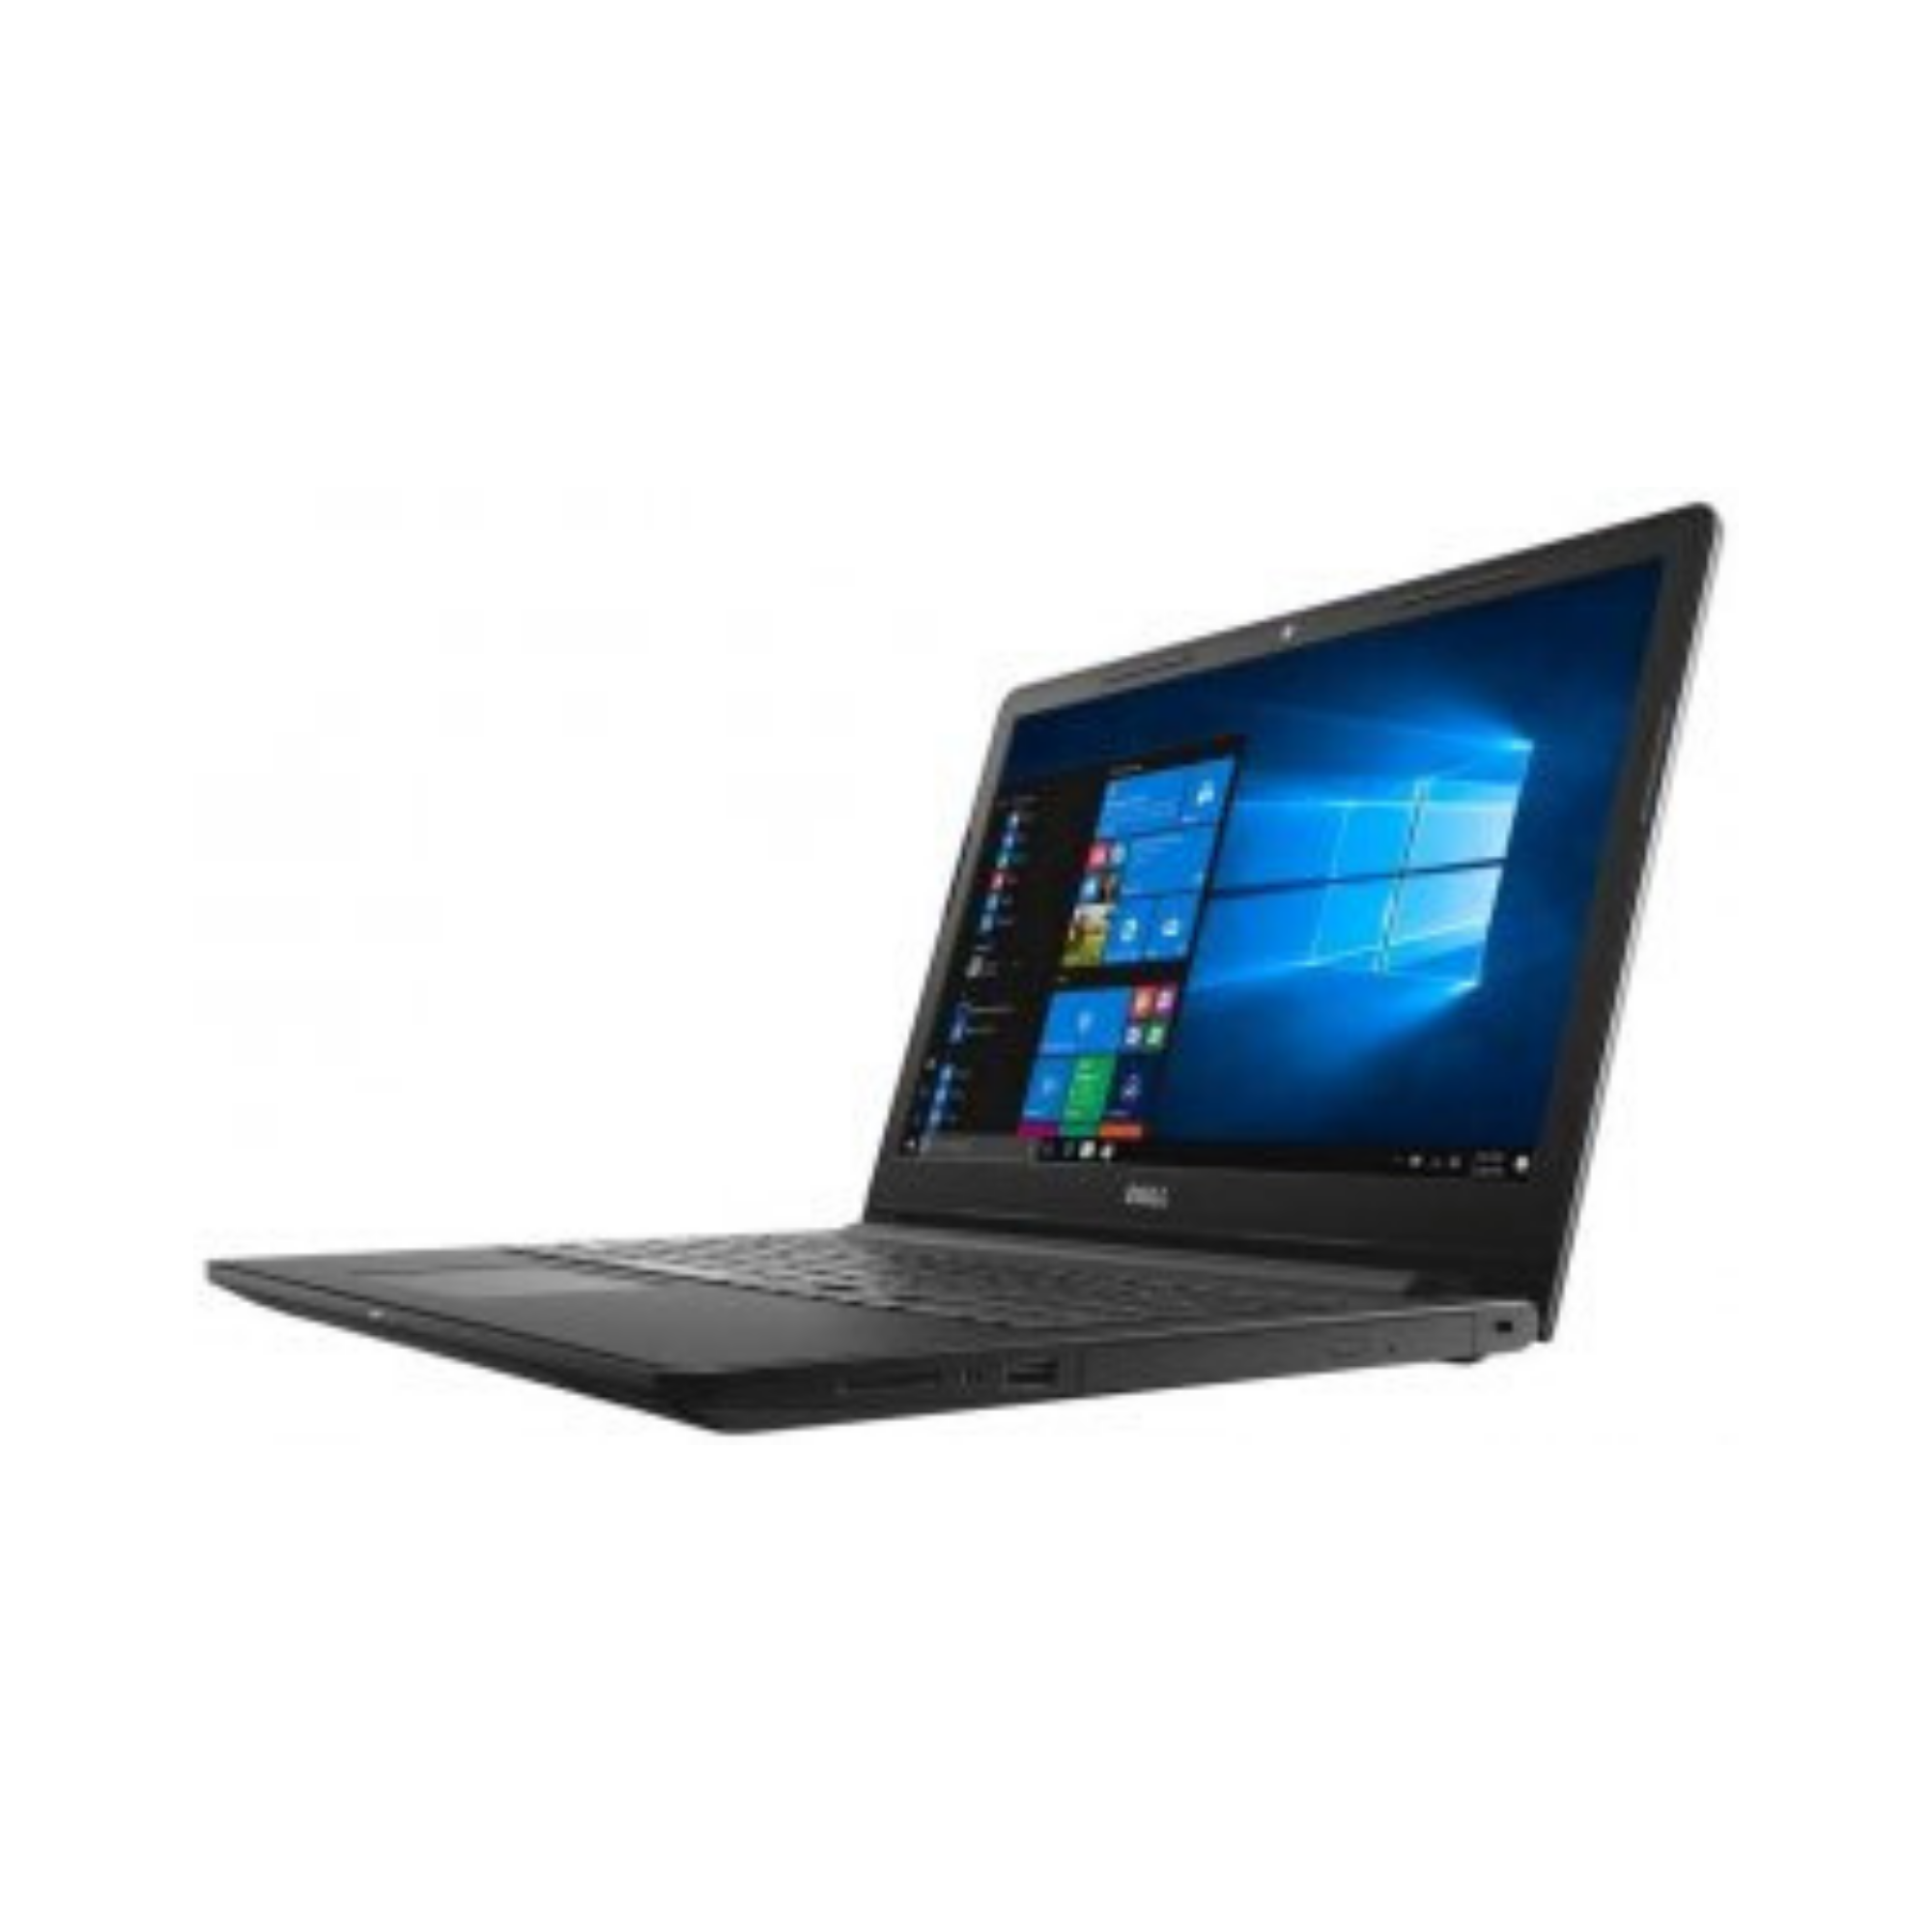 Dell Inspiron Core i5 8th Gen 15.6-inch FHD Laptop (4GB/1TB HDD/Windows 10/MS Office/Black/2.5kg), 3576